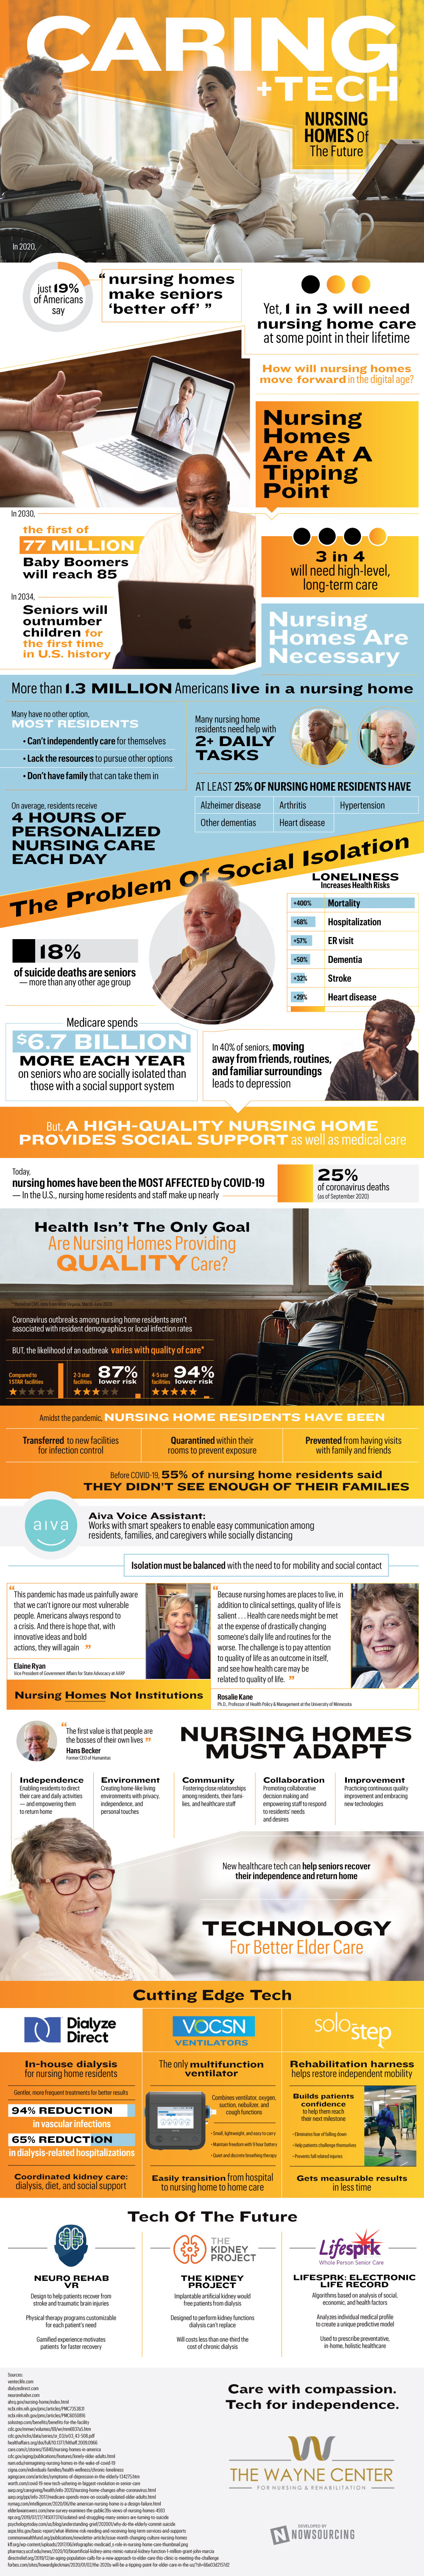 the future of nursing homes (infographic)